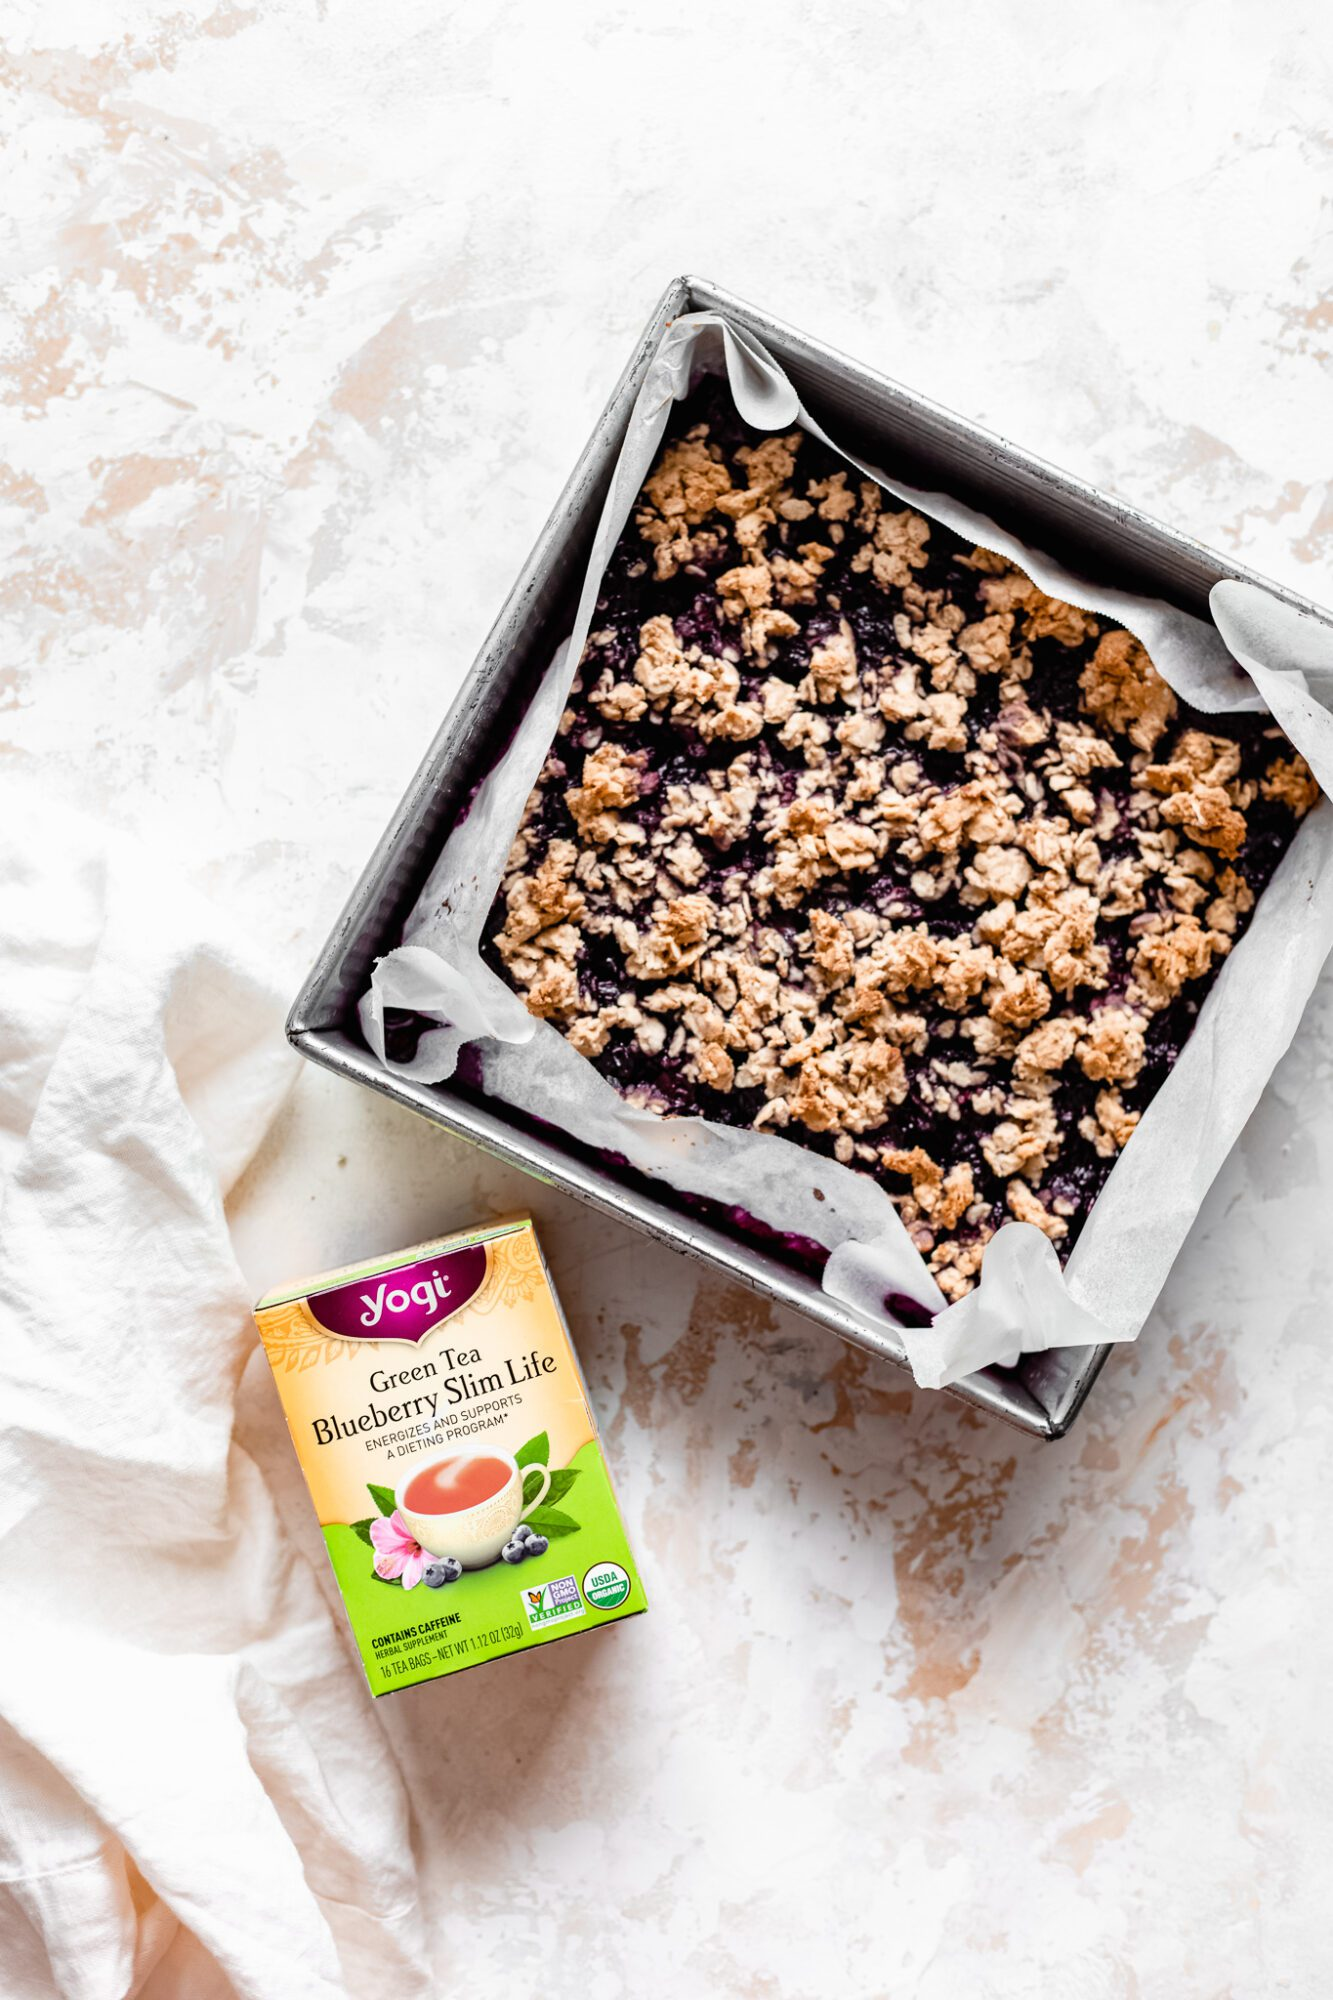 baked healthy blueberry crumble bars with yogi tea box